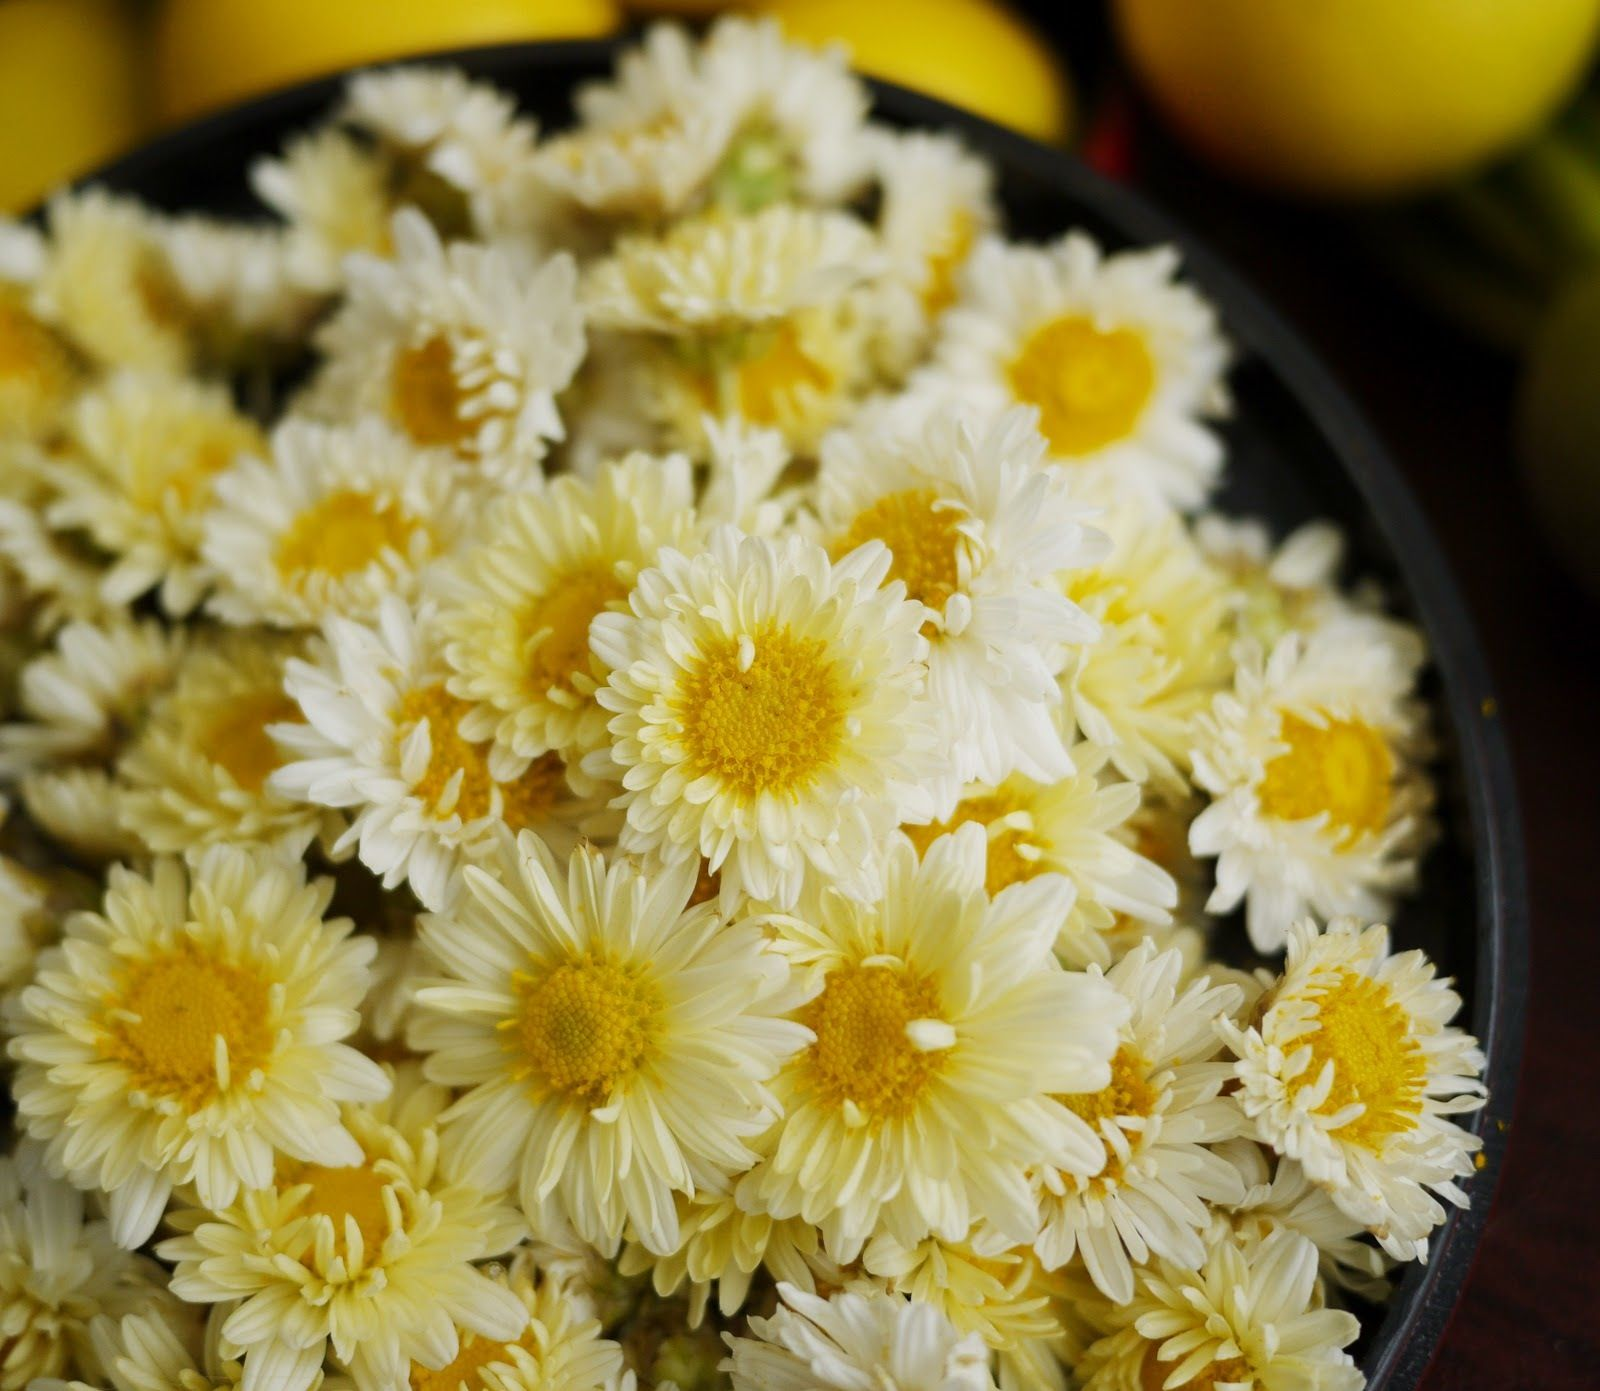 Pin By Asa Seamur Bey On Flower Inspiration In 2020 Chrysanthemum Flower Chrysanthemum Tea Herbal Teas Recipes